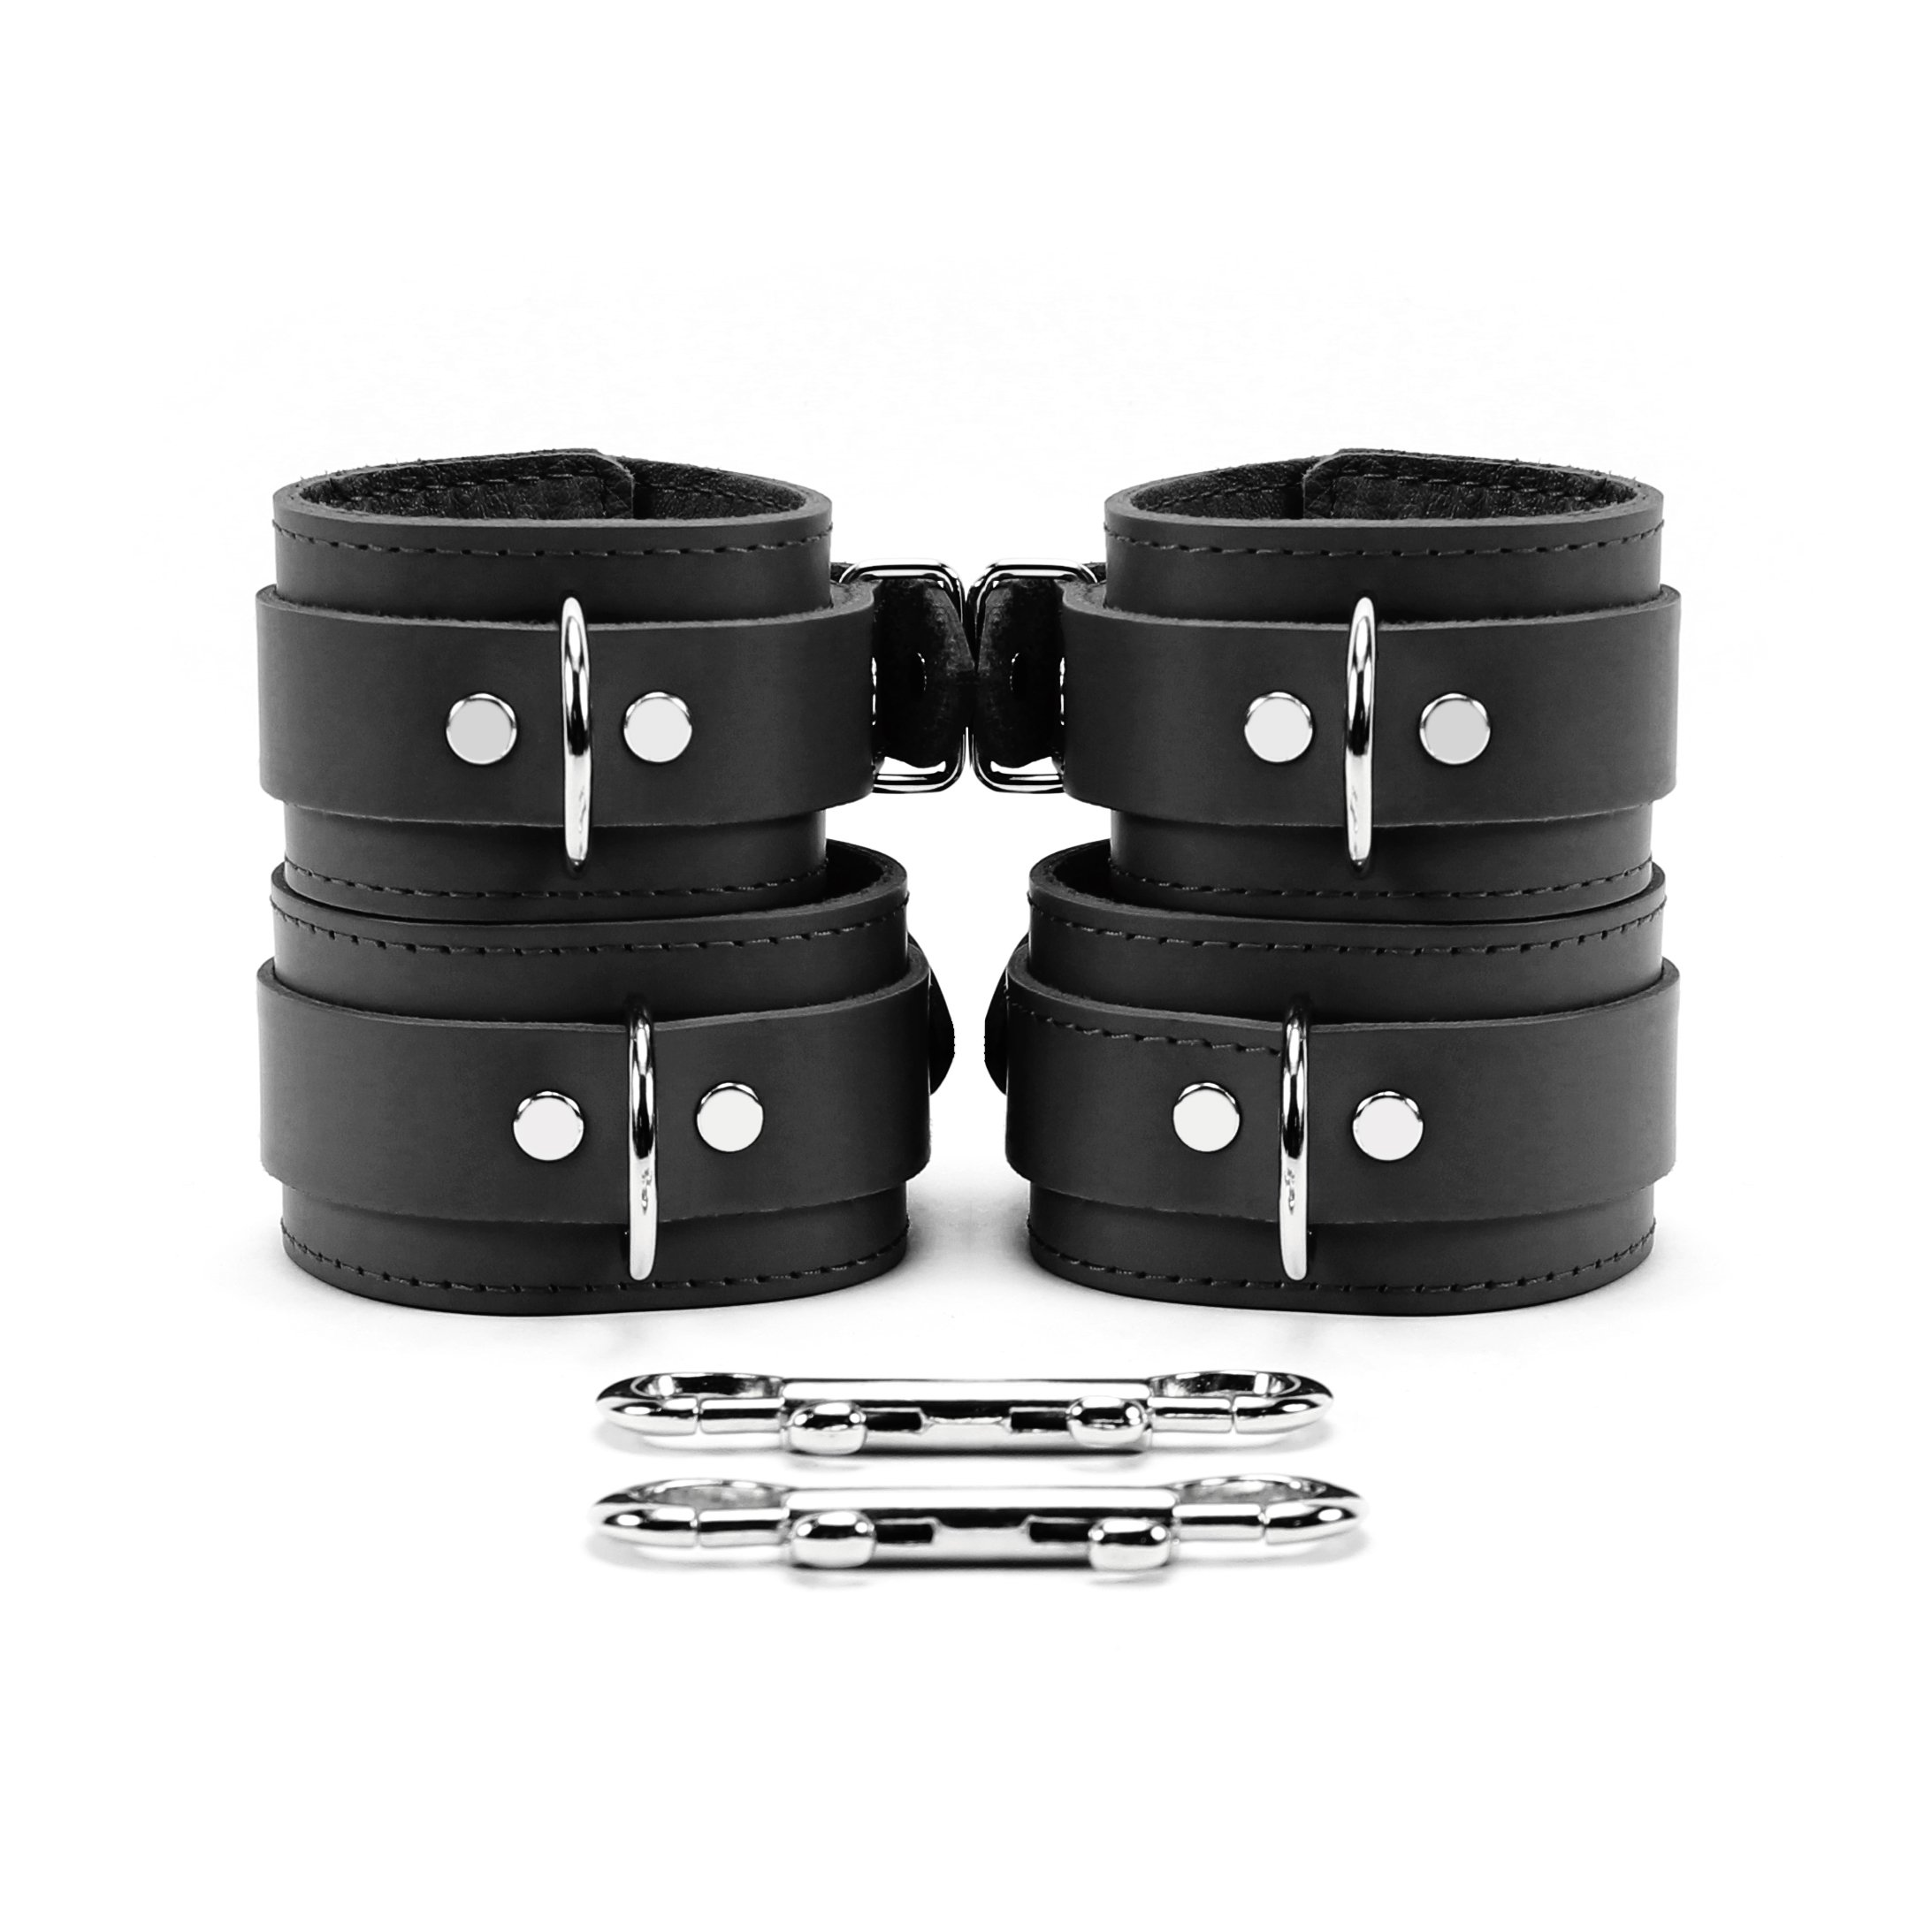 Atlas Wrist and Ankle Cuffs Combo Lambskin Leather Extremely Soft Restraints (Black)